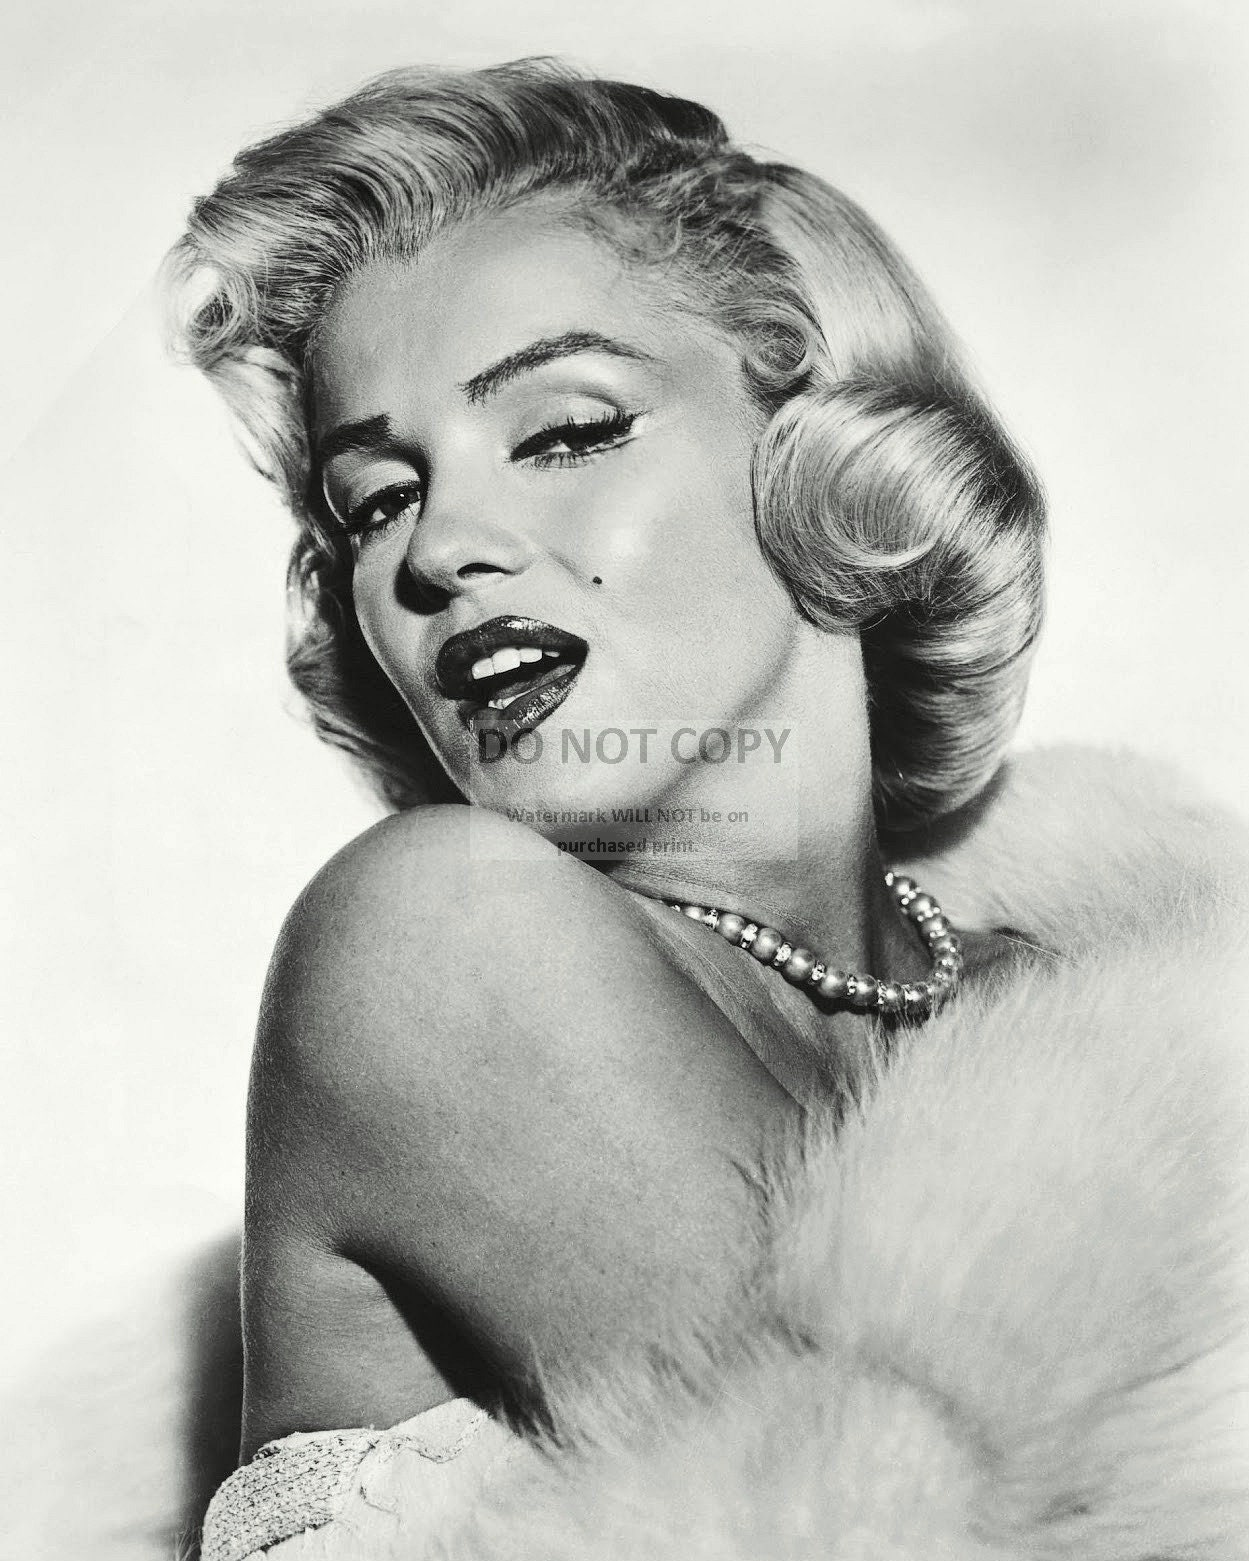 Marilyn Monroe Iconic Actress and Sex-Symbol - 5X7, 8X10 or